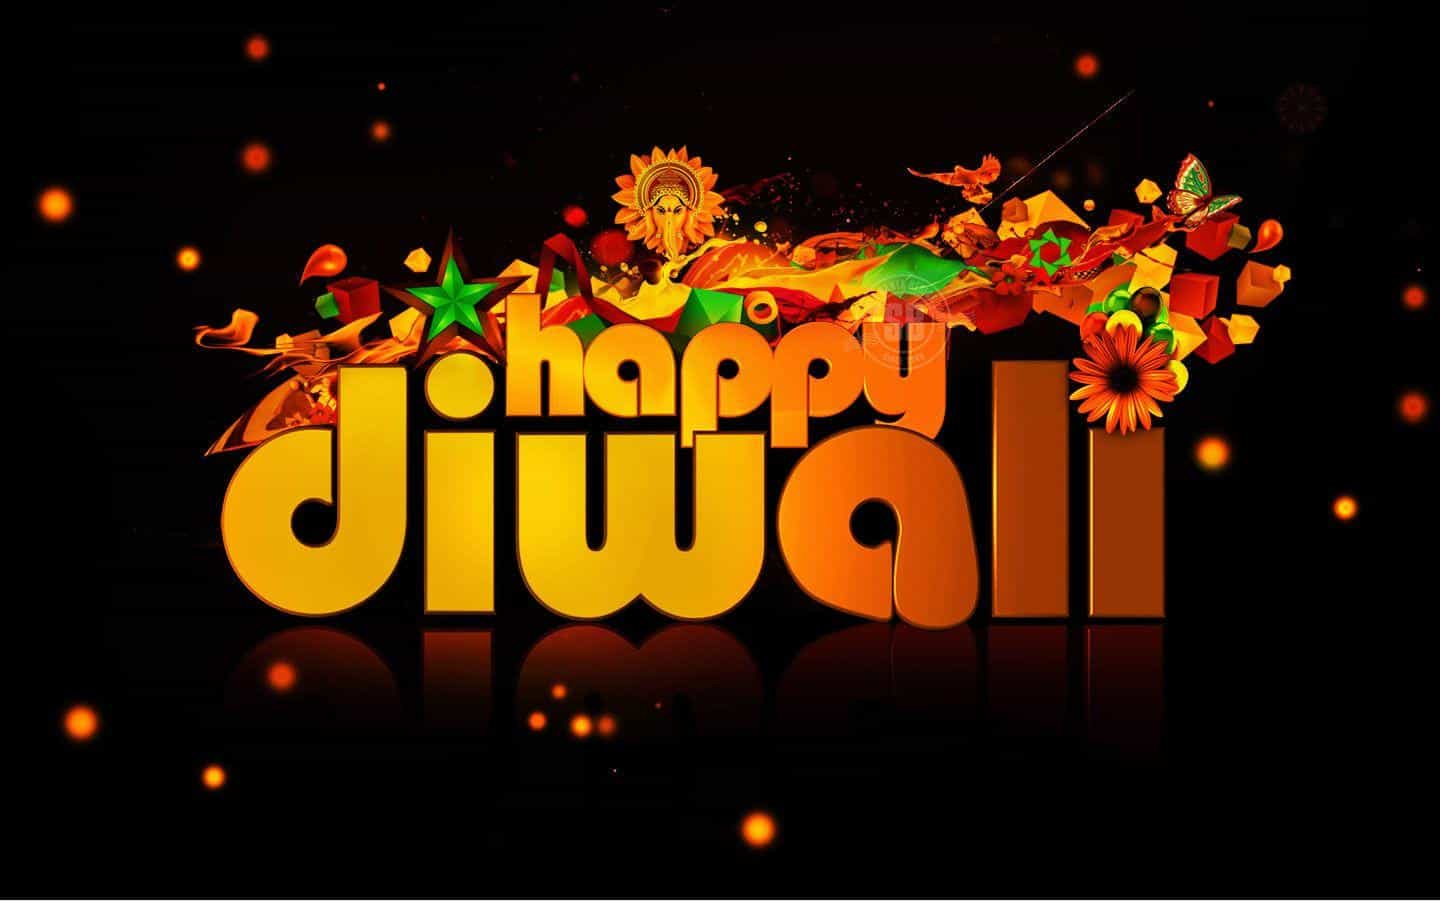 Diwali Quotes Happy Diwali Quotes 2018 Diwali Wishes Quotes